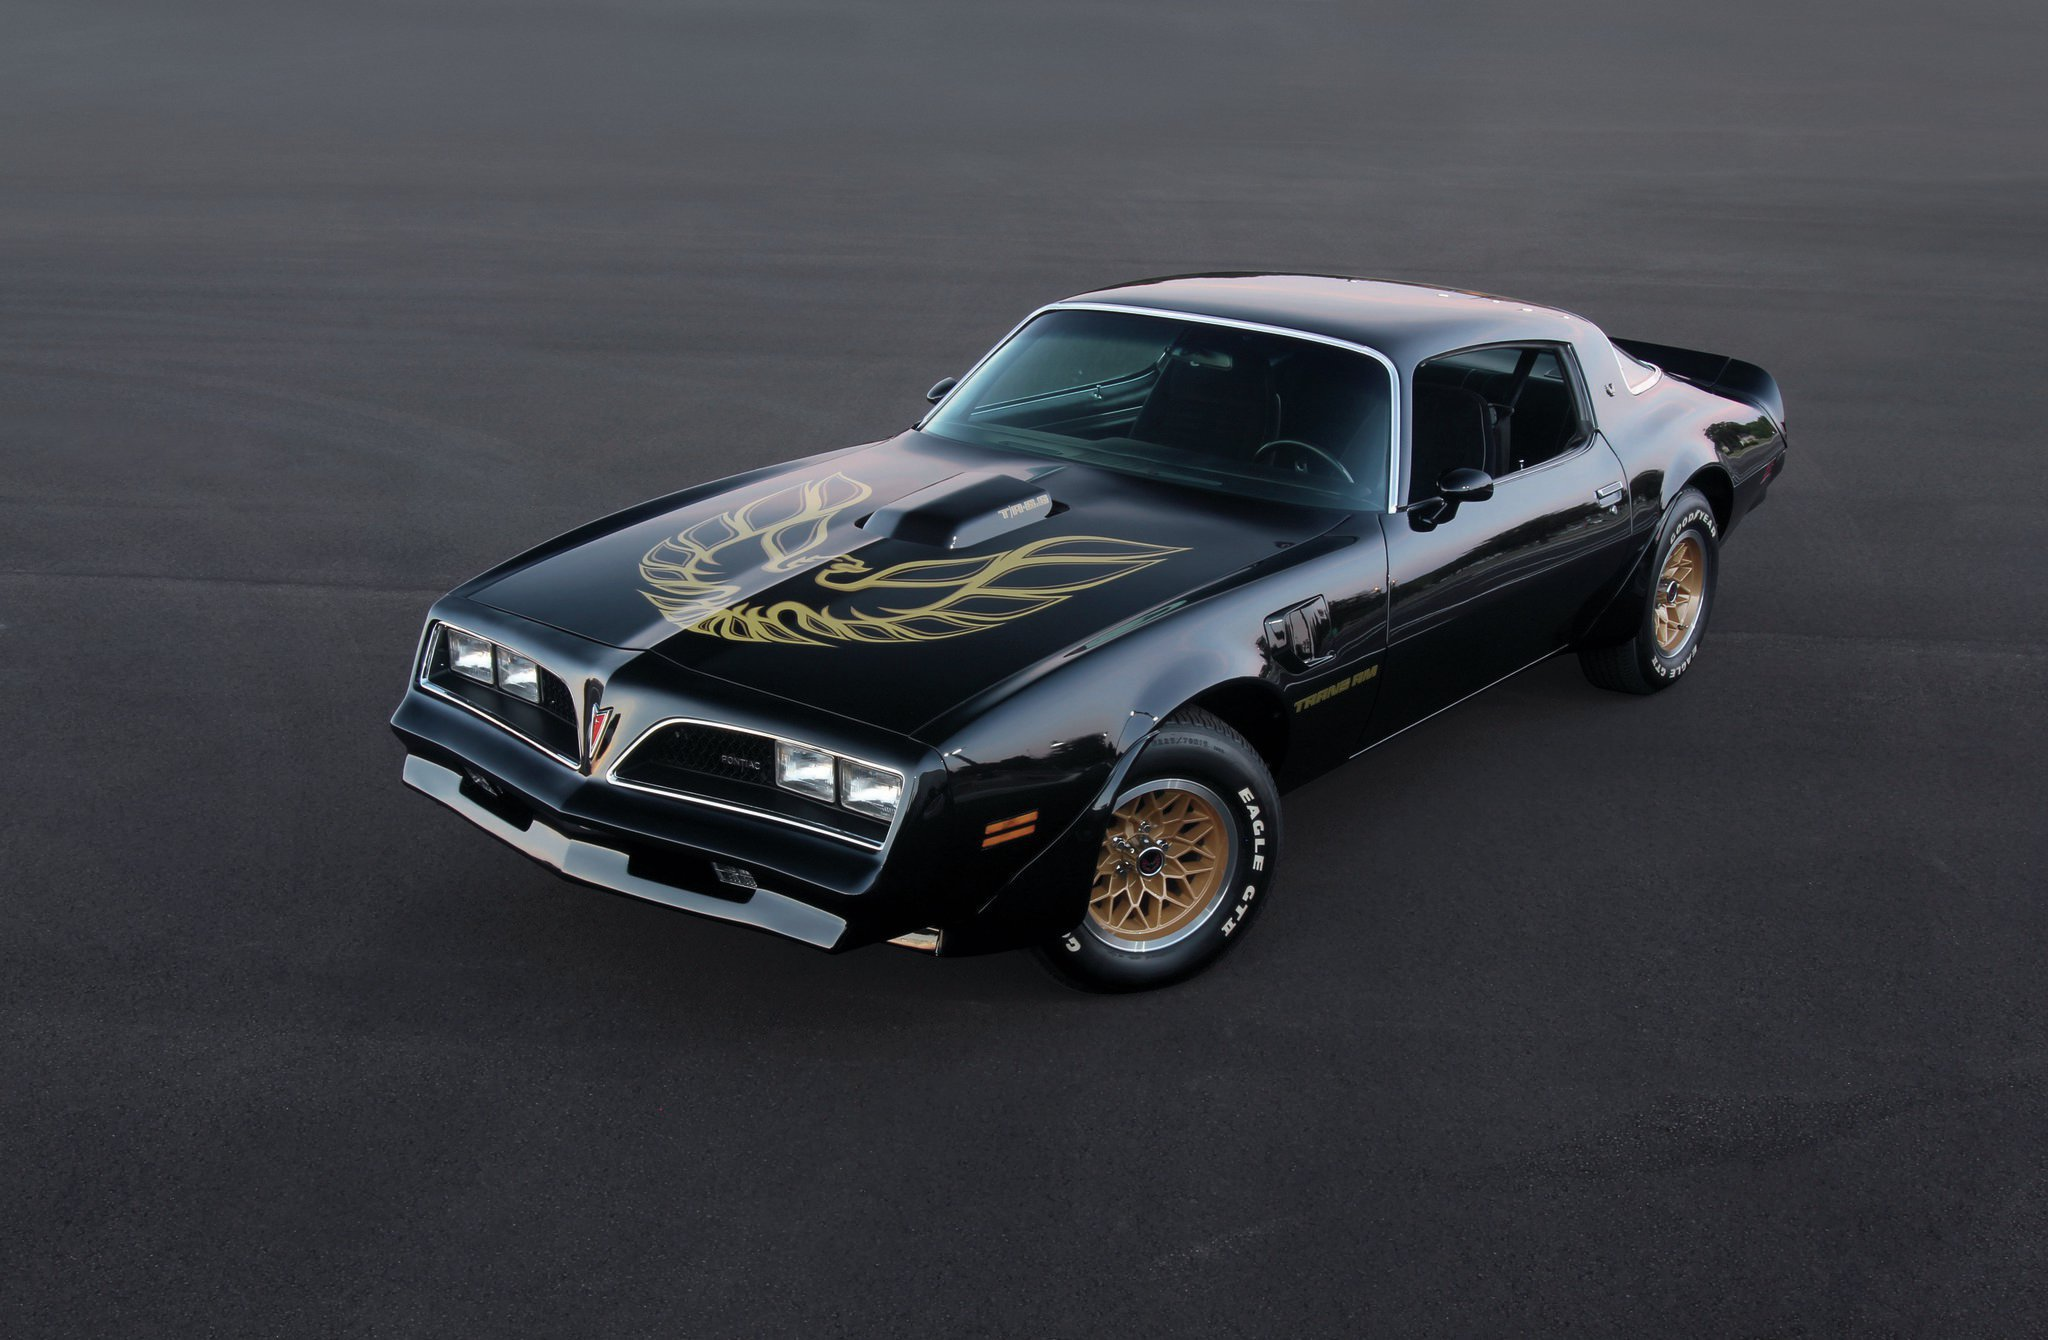 Owner Ray Burlette wisely opted to forego creating a Bandit clone out of his otherwise well-optioned '78 T/A. That hasn't stopped the masses from calling it a Bandit, though. Black returned to the Firebird's color palette in '76 and remained until '02.